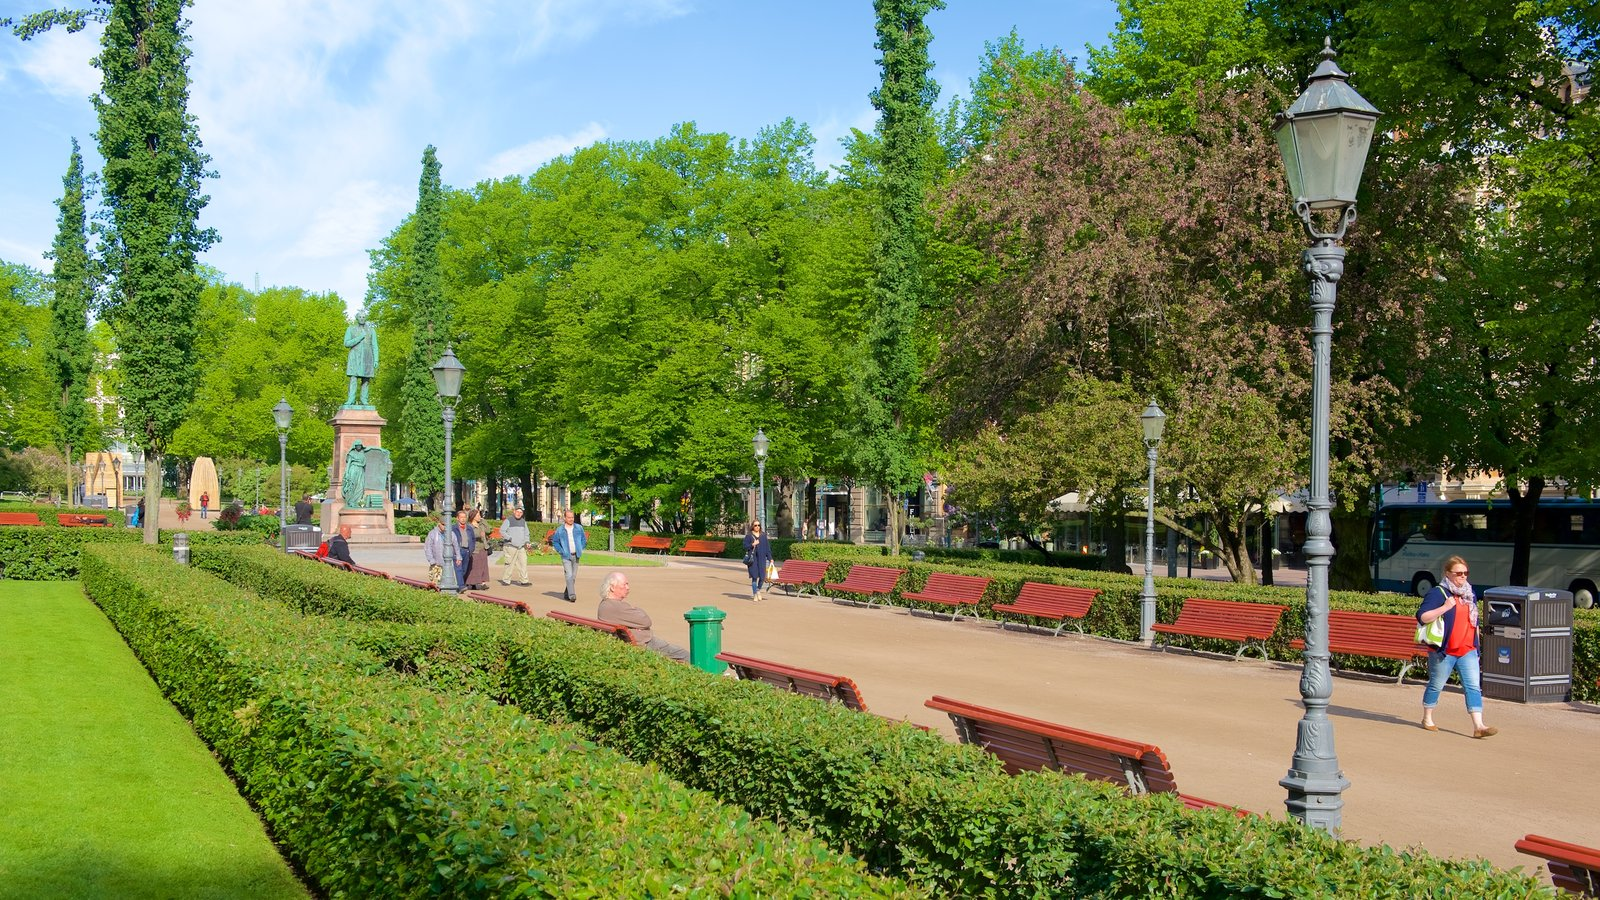 Esplanadi showing a garden